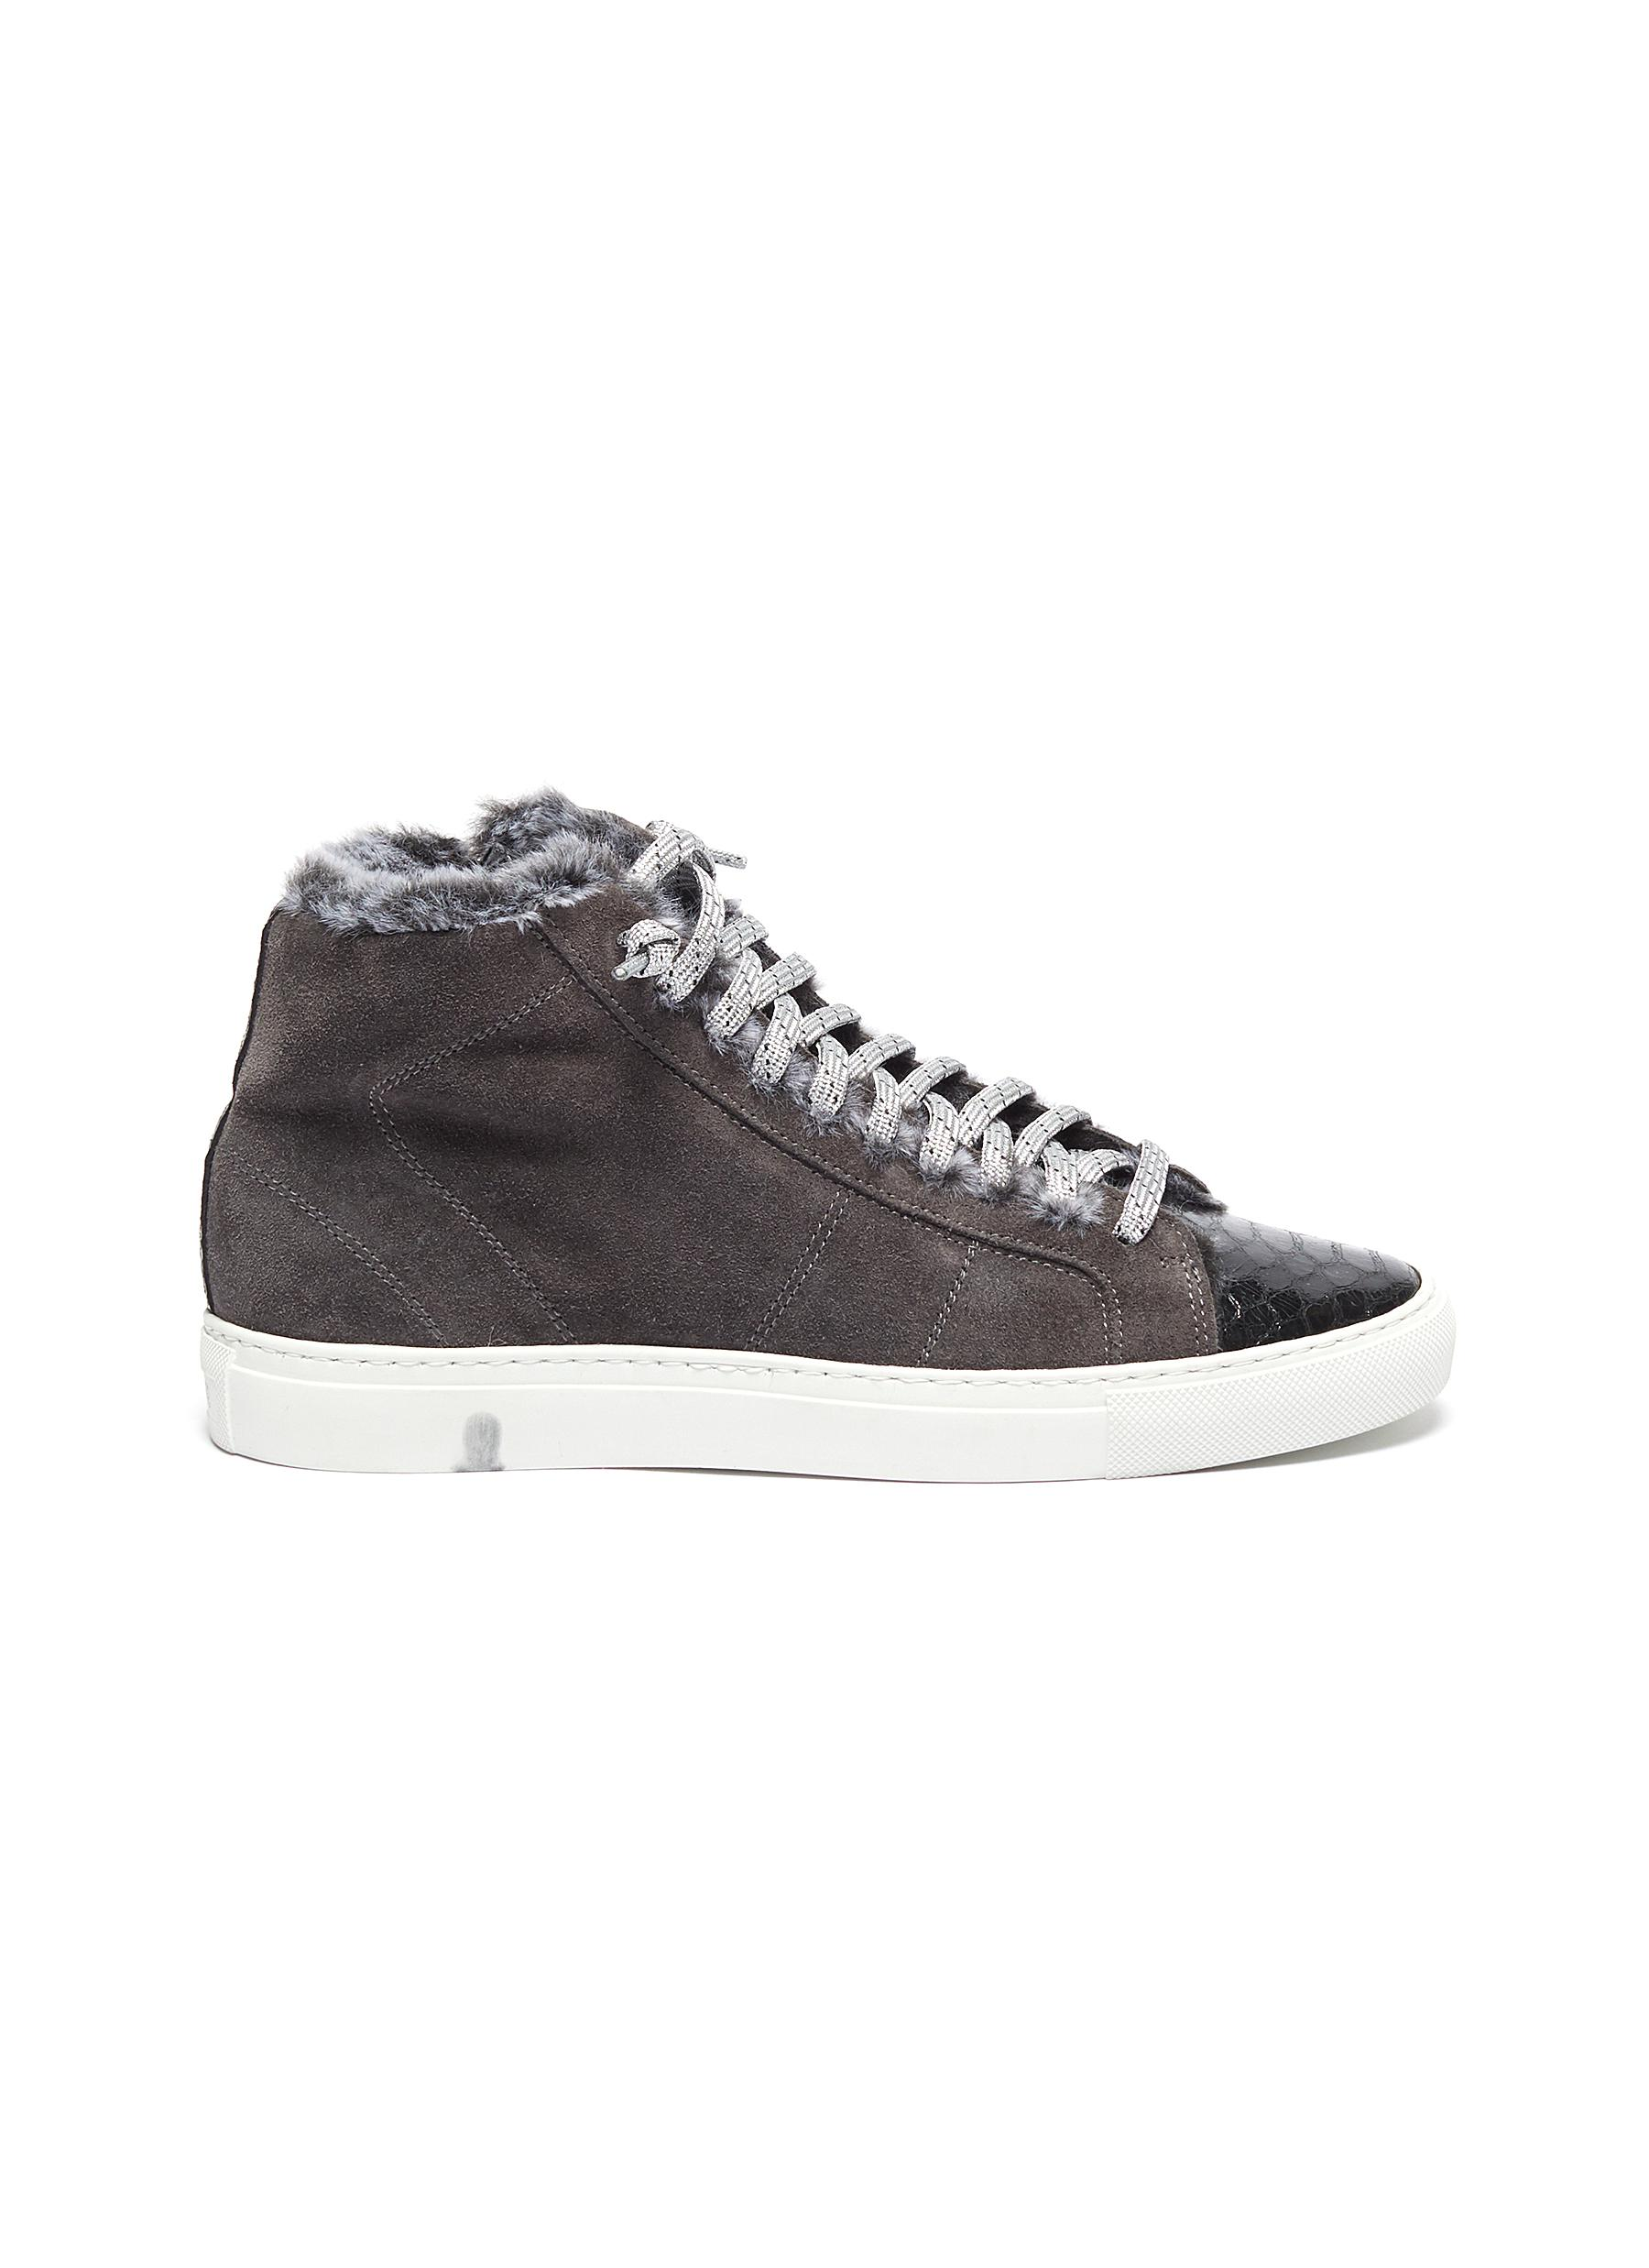 Star fur trim suede high top sneakers by P448